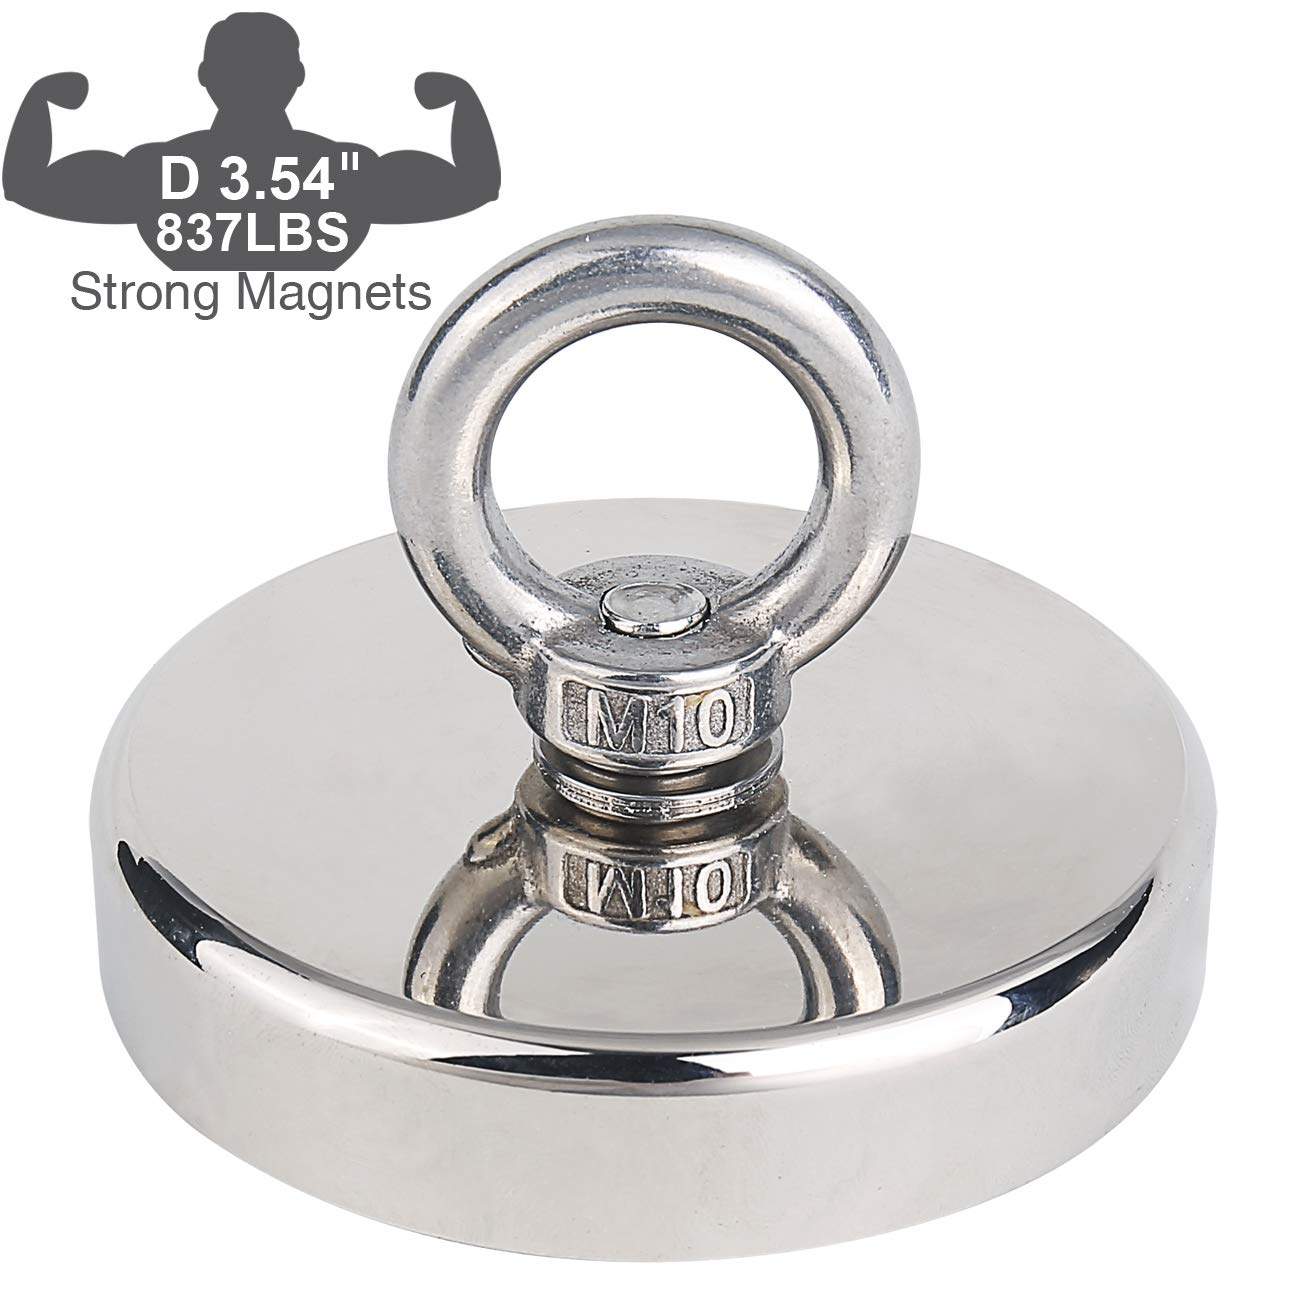 Fishing Magnet 837LBS Pulling Force Rare Earth Neodymium Magnet with Eyebolt Diameter 3.54 inch (90mm) Superior Magnetics for Underwater Salvage, Retrieval and Recovery